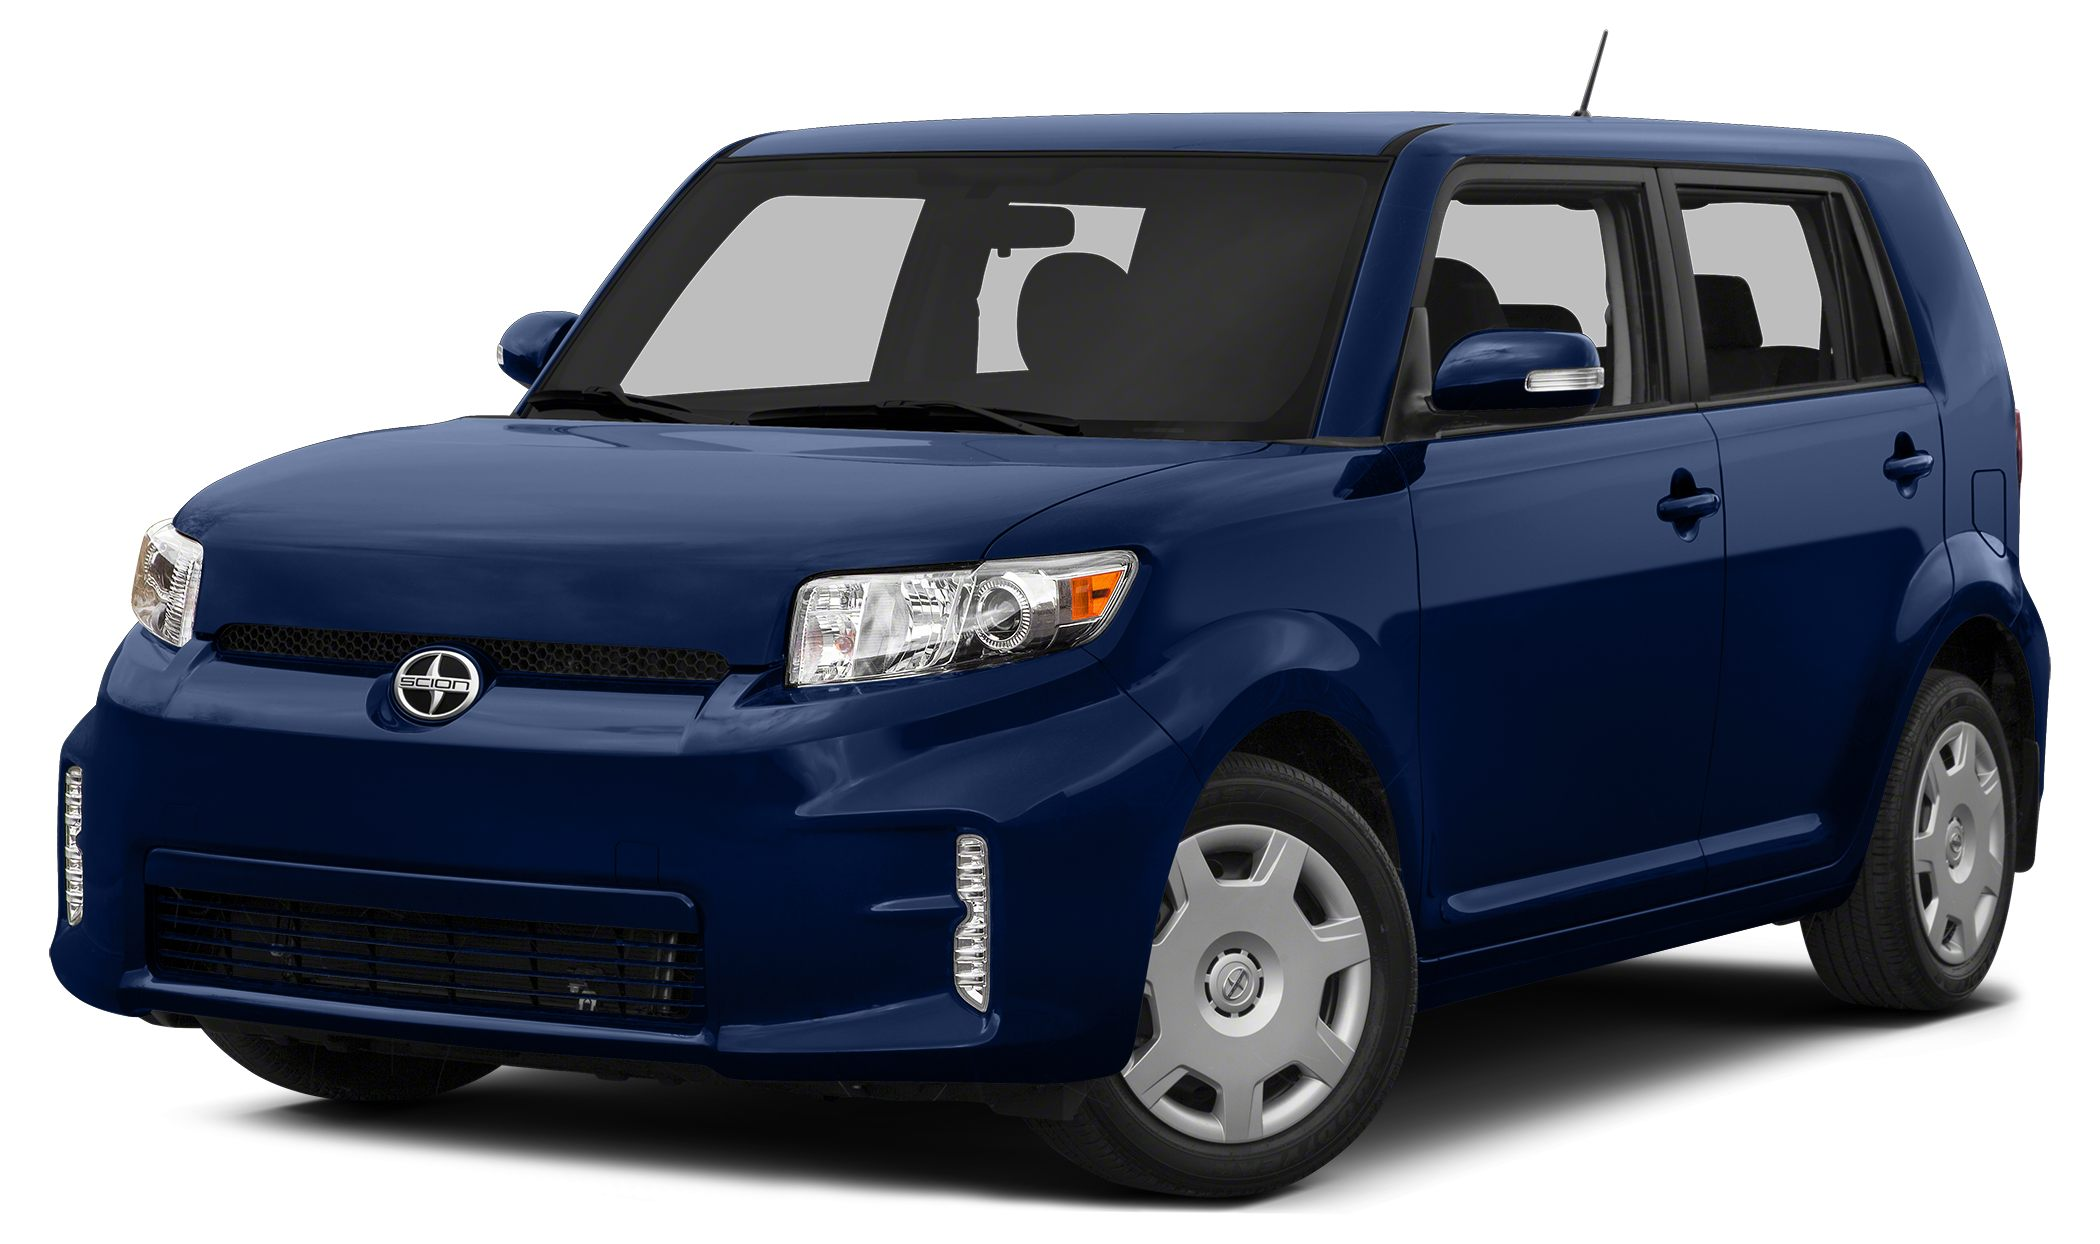 2014 Scion xB Base EPA 28 MPG Hwy22 MPG City CARFAX 1-Owner ONLY 4895 Miles xB trim iPodMP3